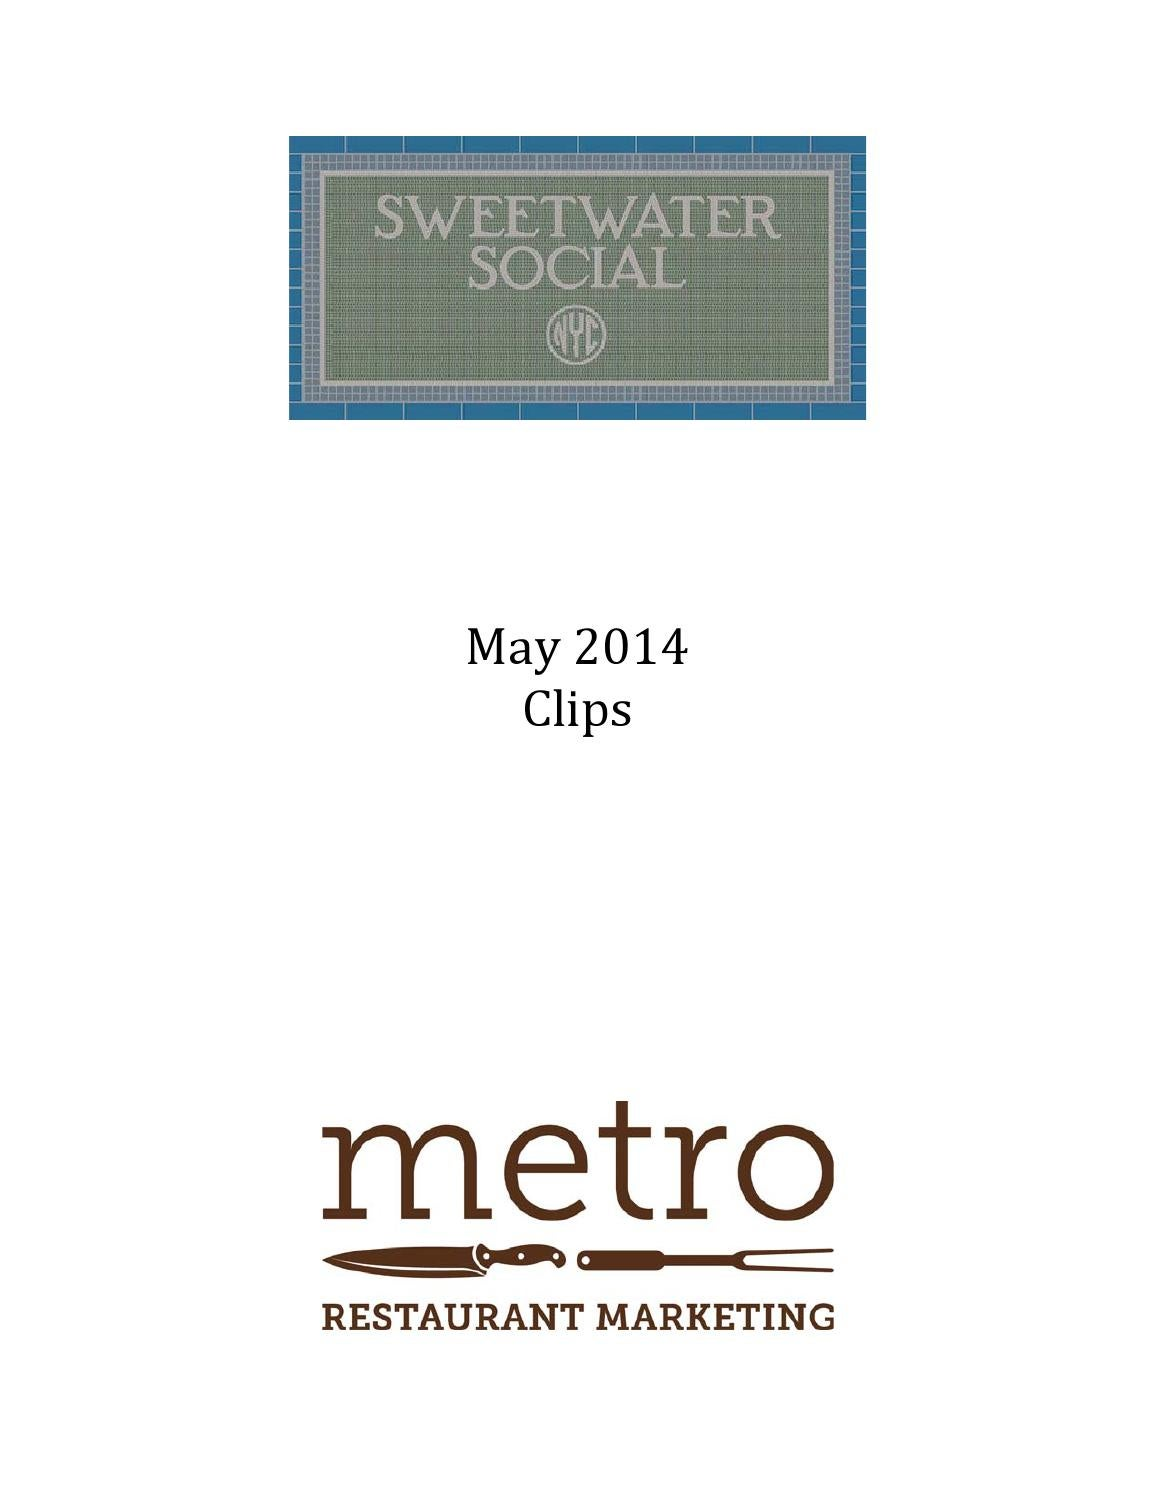 sweetwater social may 2014 sr by lindsey myers issuu